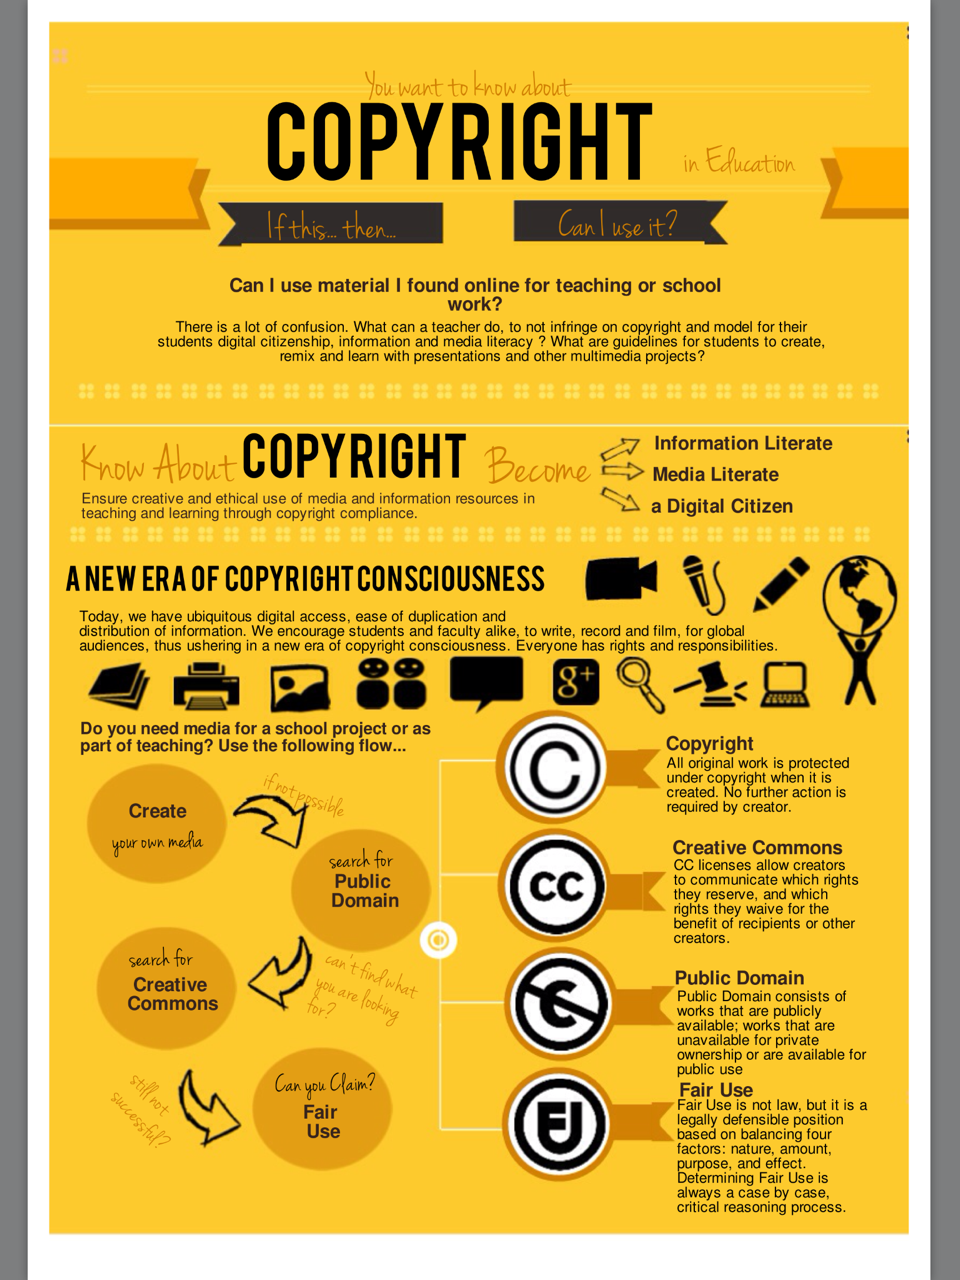 "Image ""Copyright Flowchart: Can I Use It? Yes? No?  If This...Then"" by Meryl Zeidenberg & Silvia Tolisano is licensed under CC by 4.0"